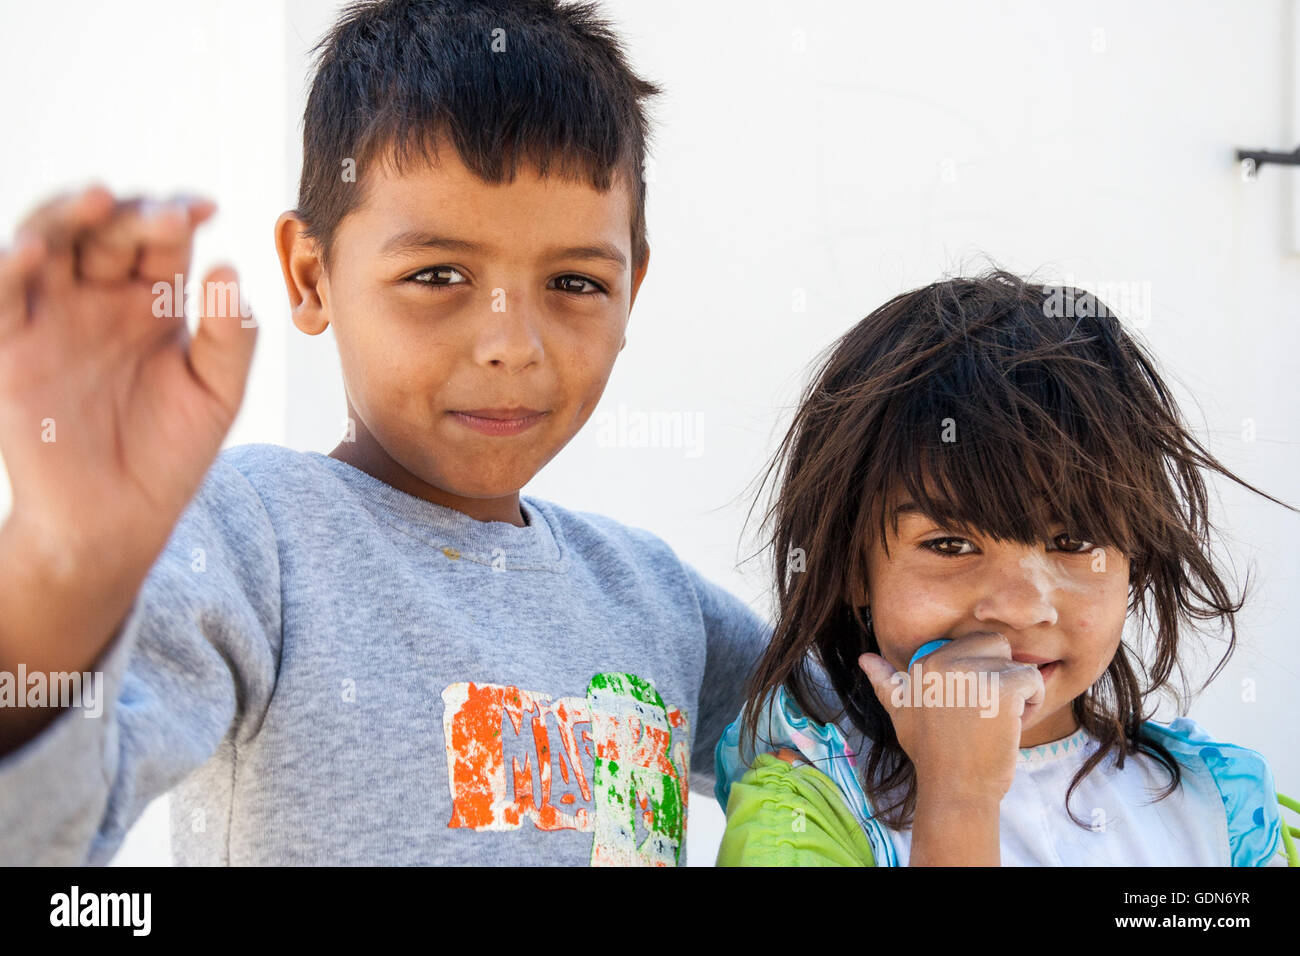 Greek islands, Santorini. Two children, brother and sister, boy and girl, 8-10 year old. Head & shoulders, looking - Stock Image